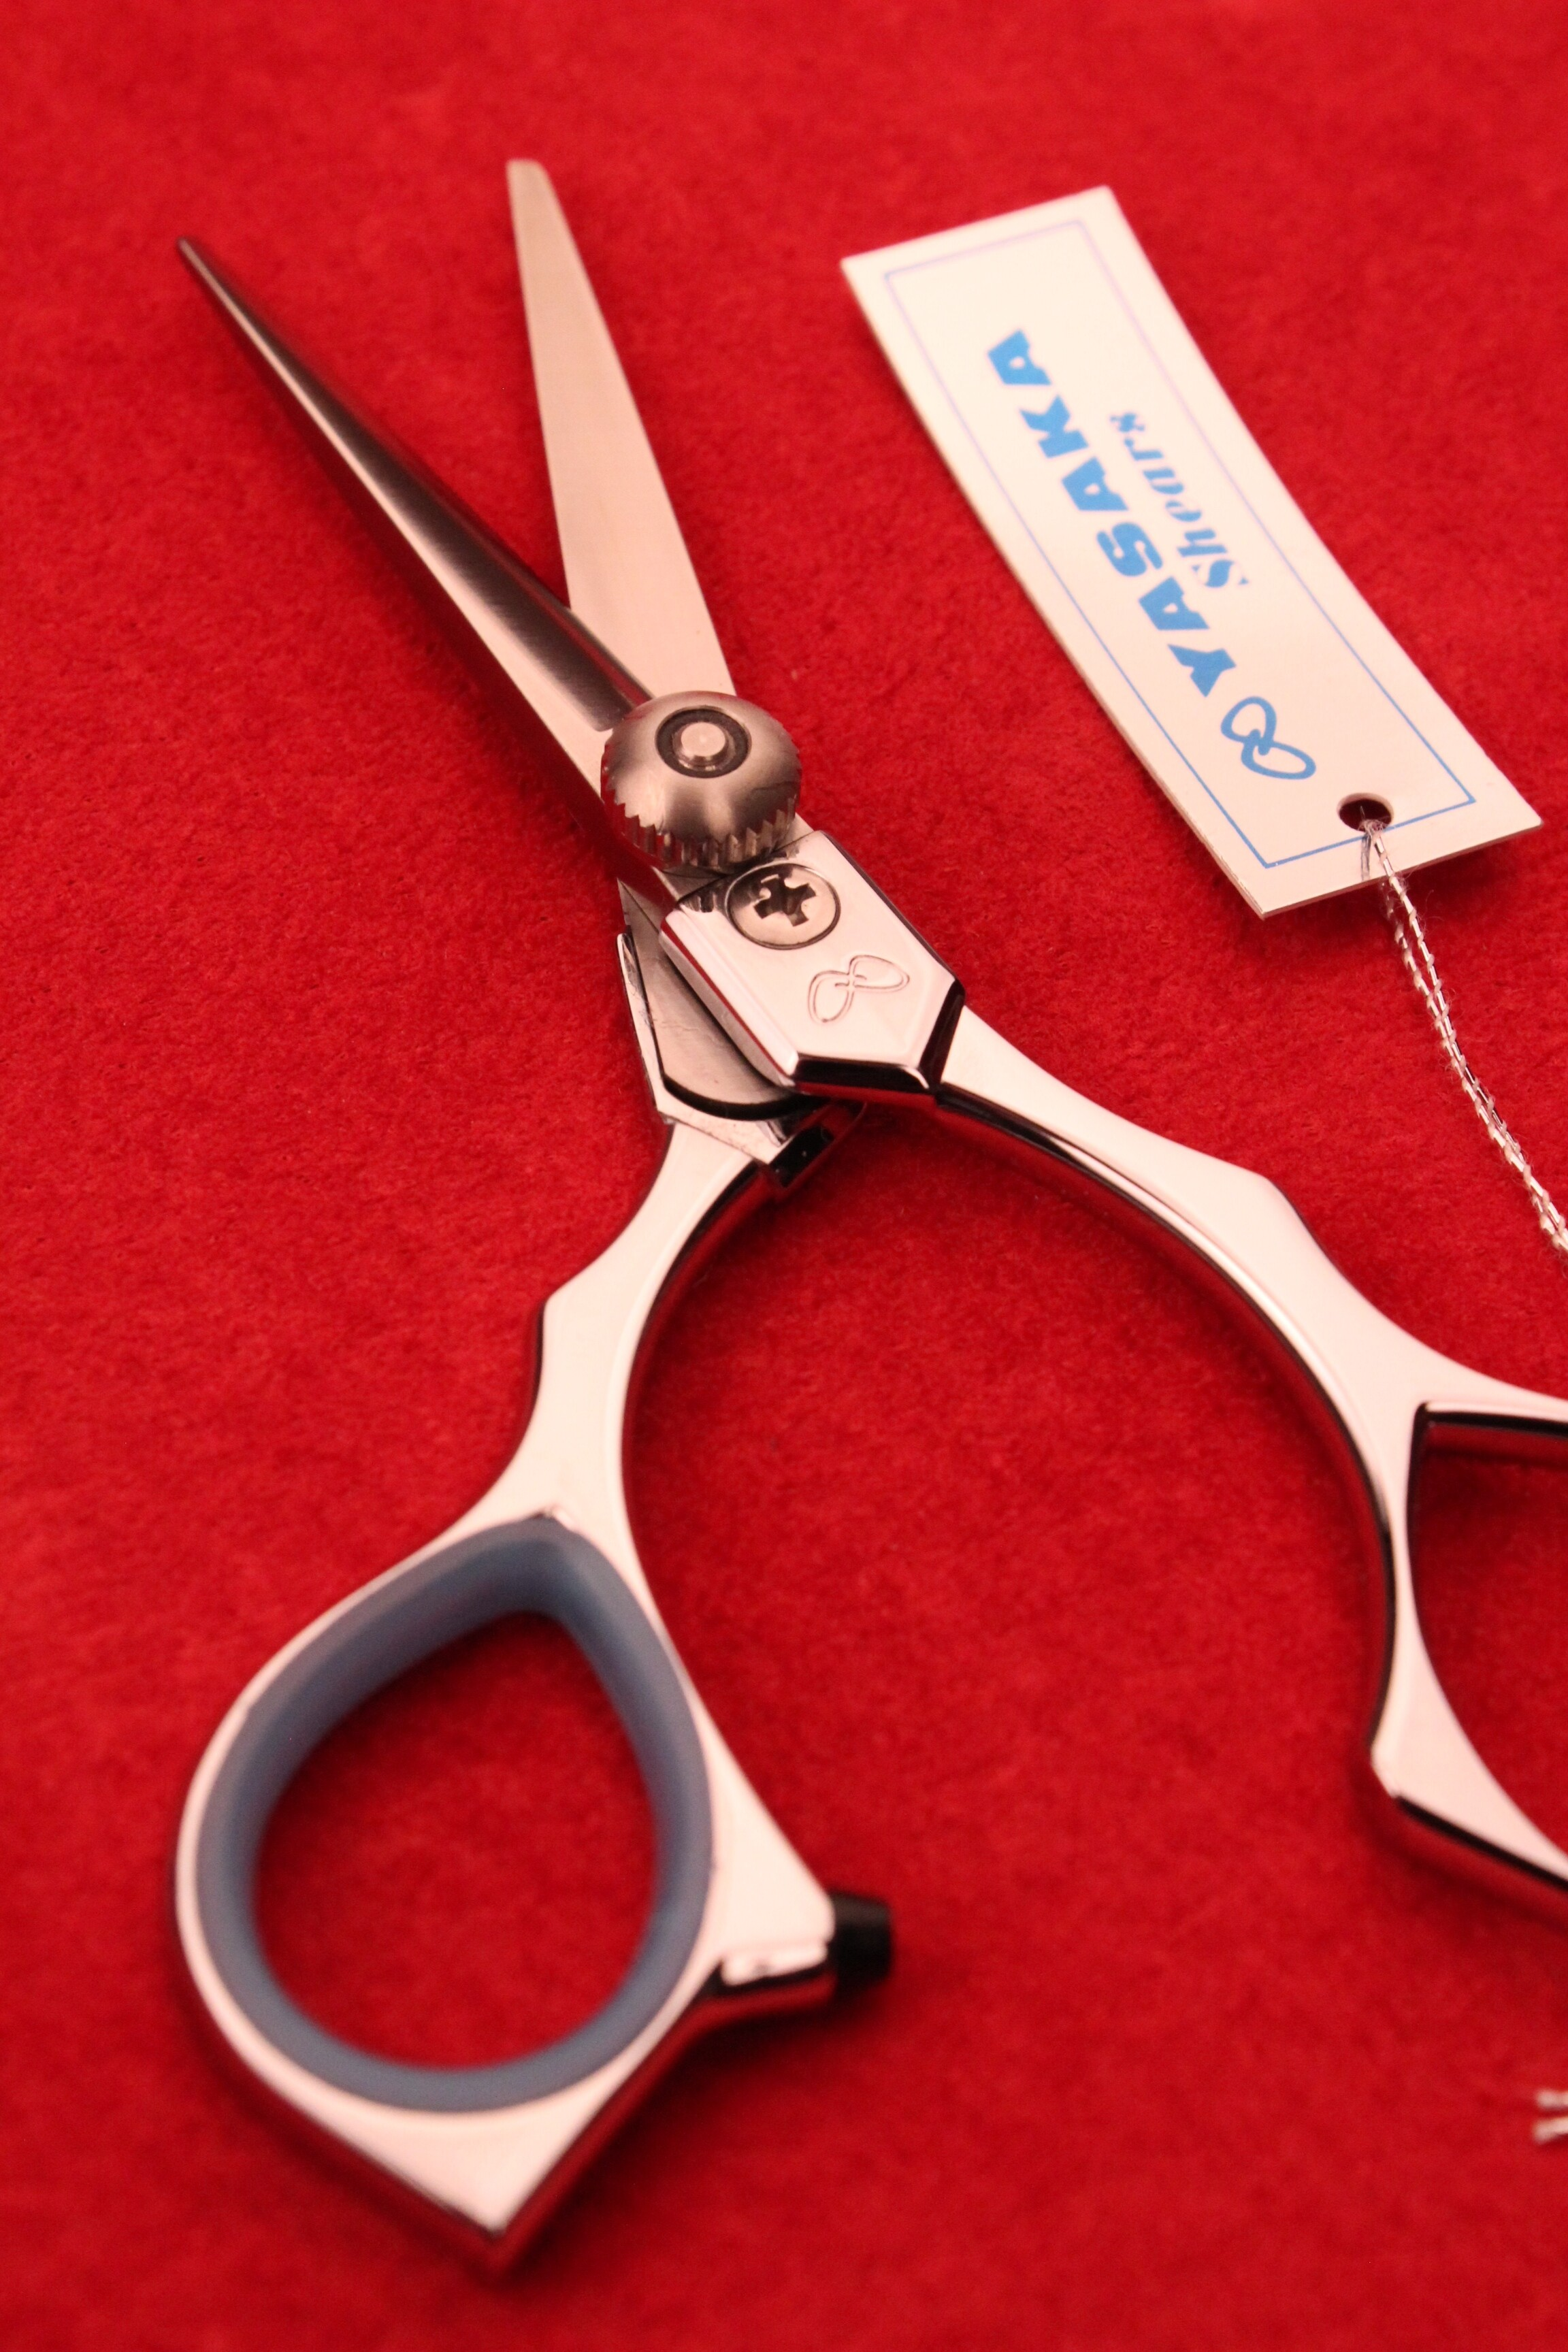 Yasaka Hair Scissors SS450 Size 4.5 inches Handmade in Japan